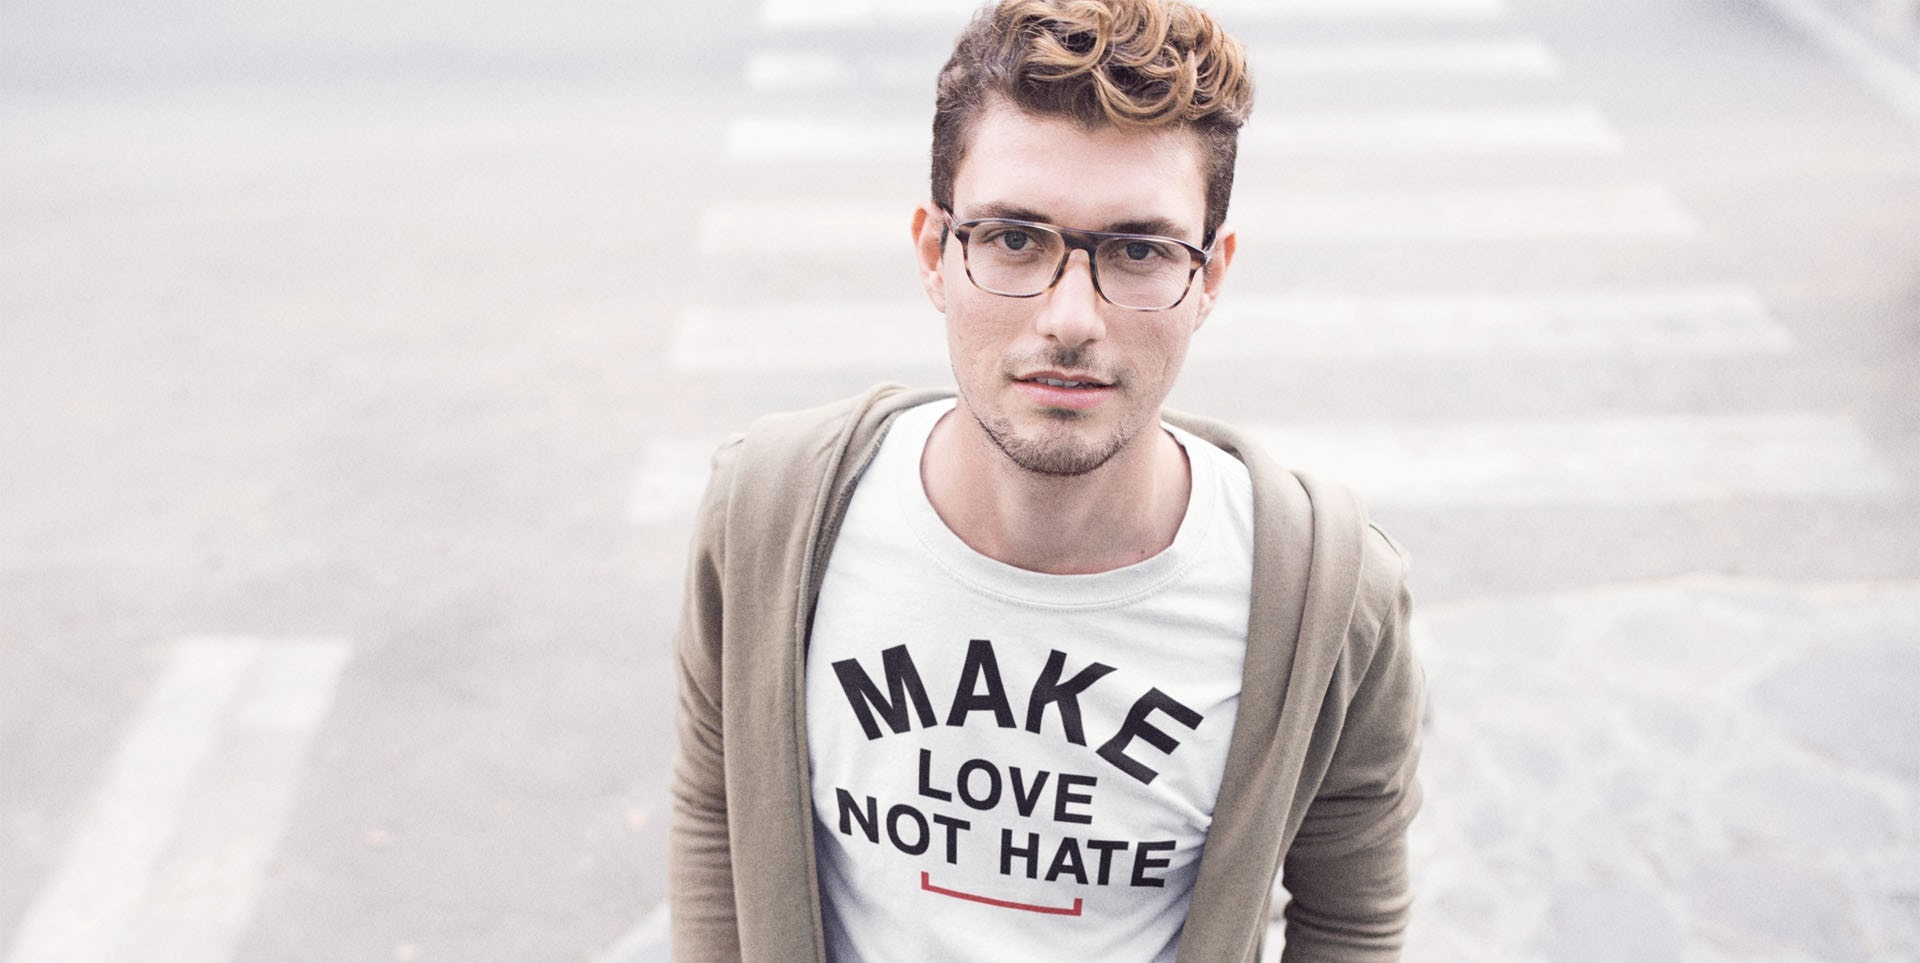 Make Love Not Hate Tshirt